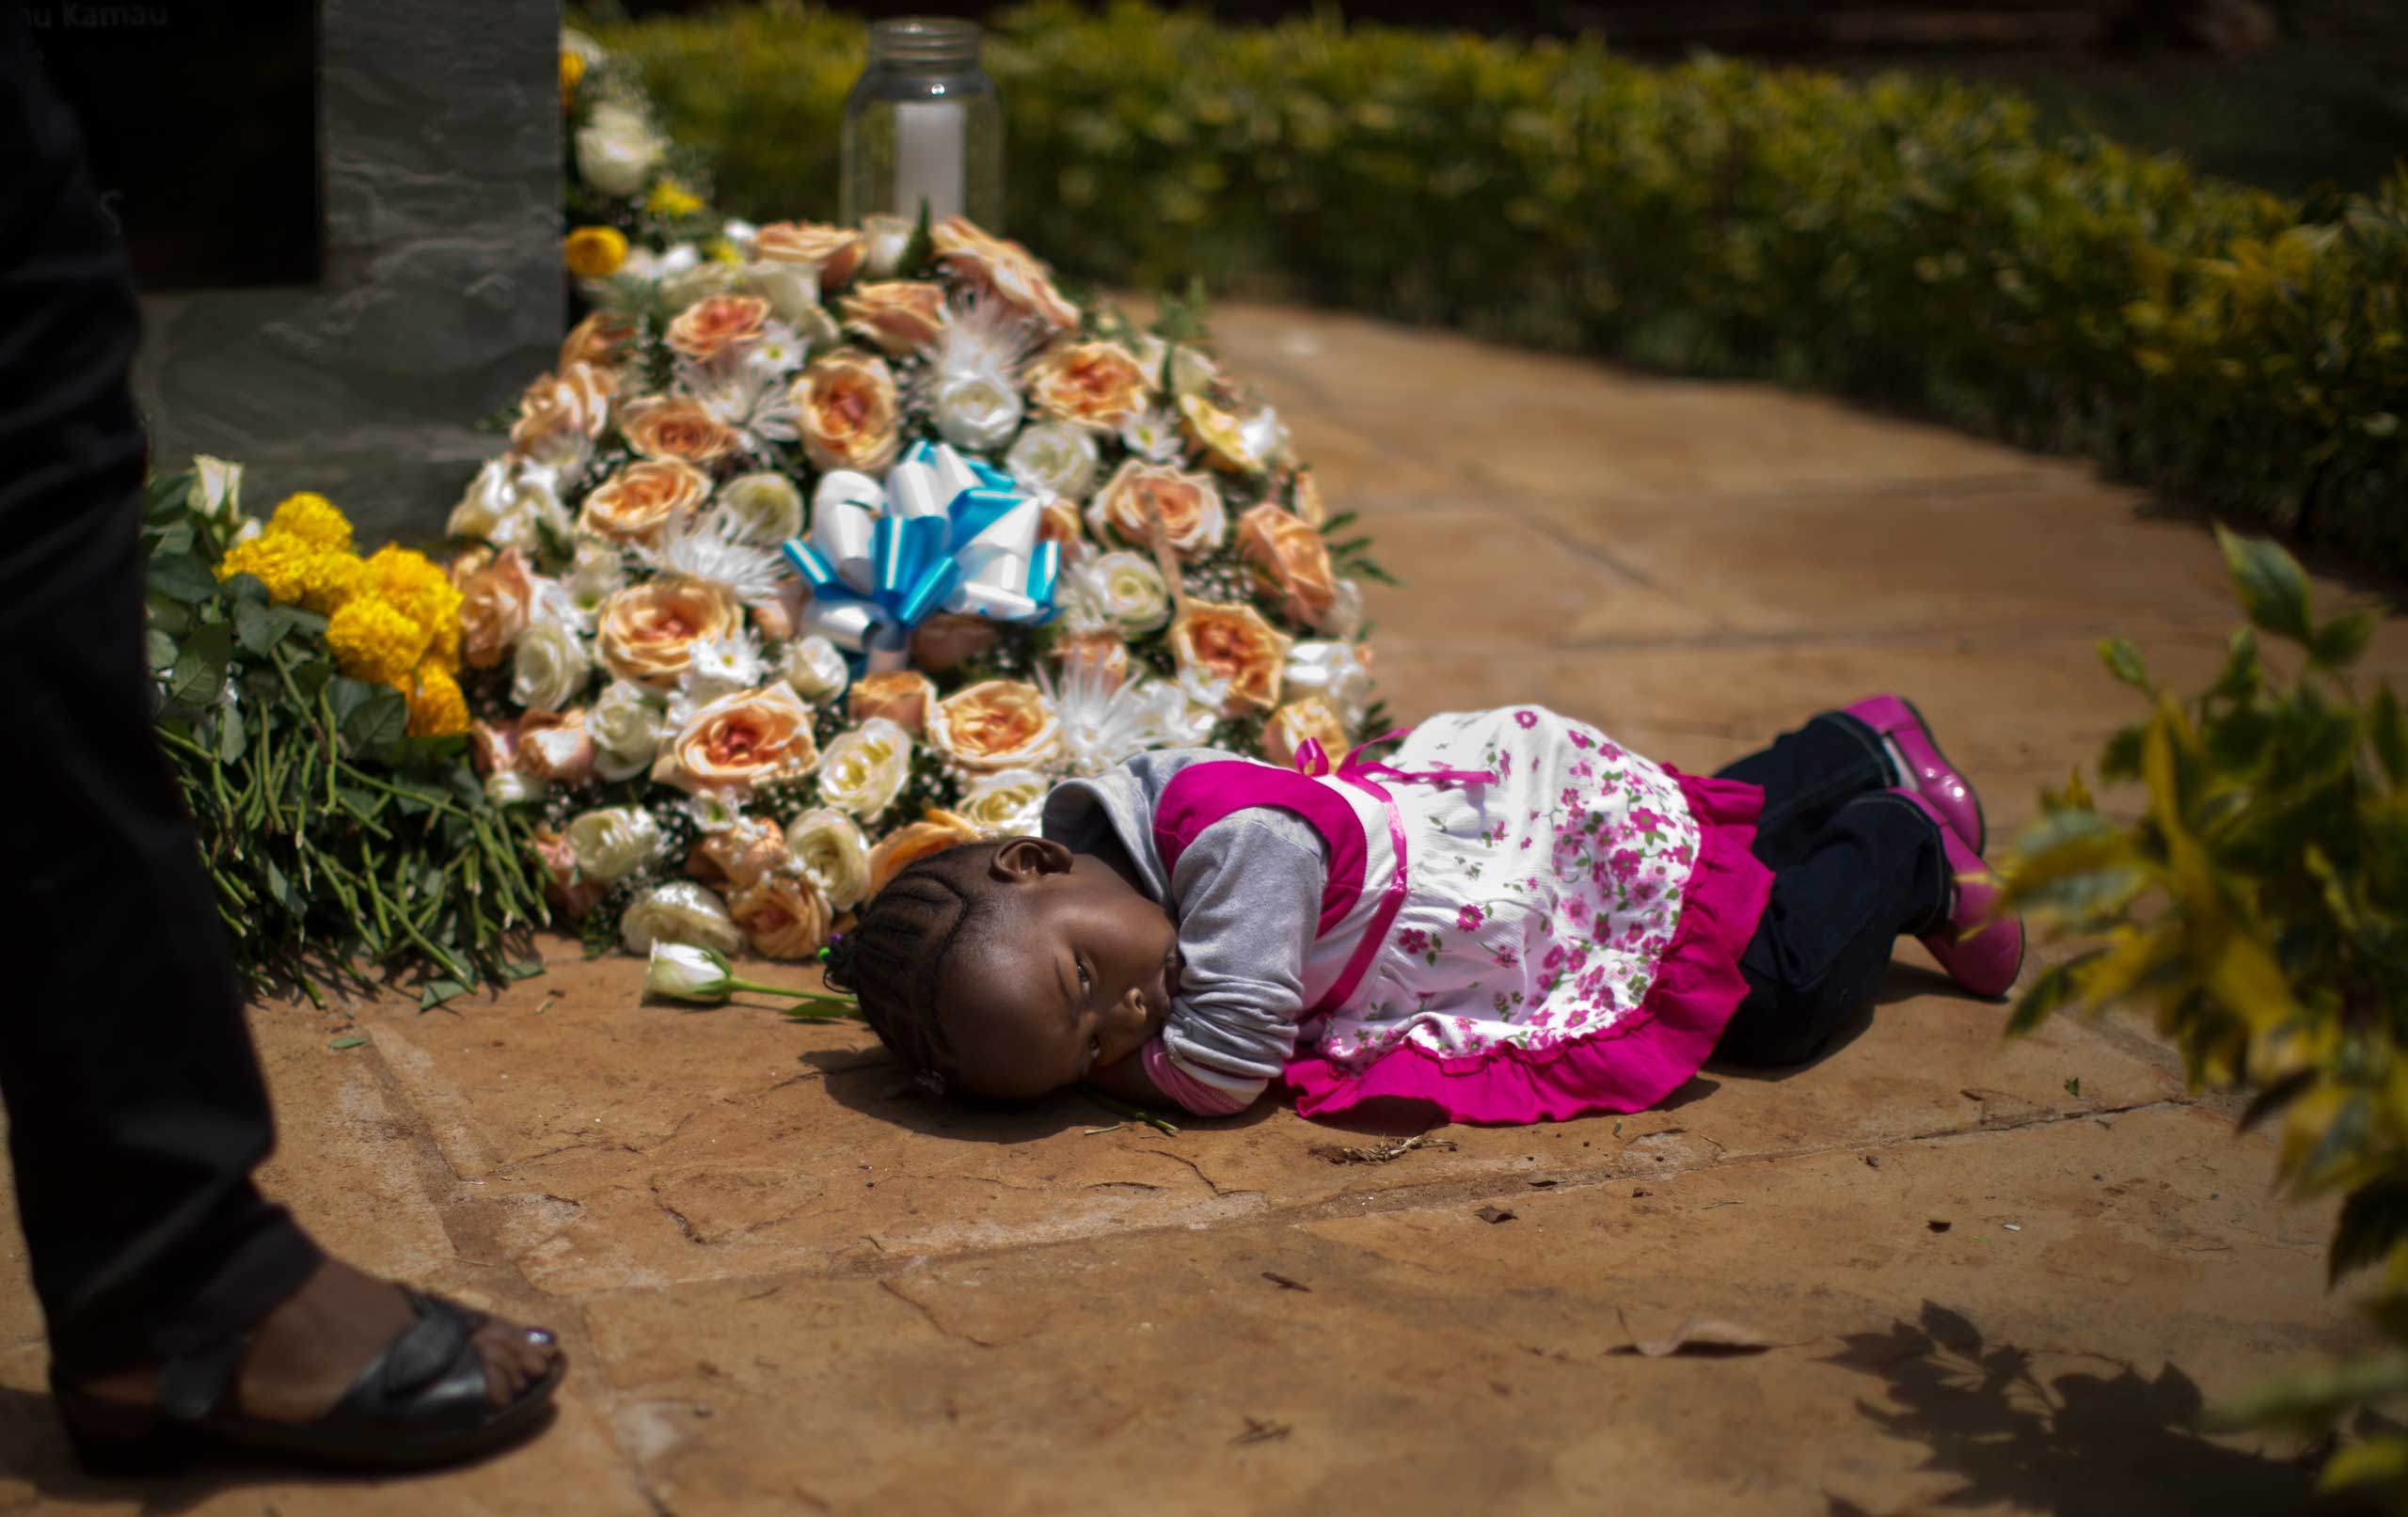 Sept. 21, 2014. Nicole Tashly, 2, lies quietly on the ground holding the white rose her mother Esther Muthoni, left, instructed her to lay at the memorial monument while they remember her father Paul Muriithi Muriuki who died in the Westgate Mall attack in Kenya.